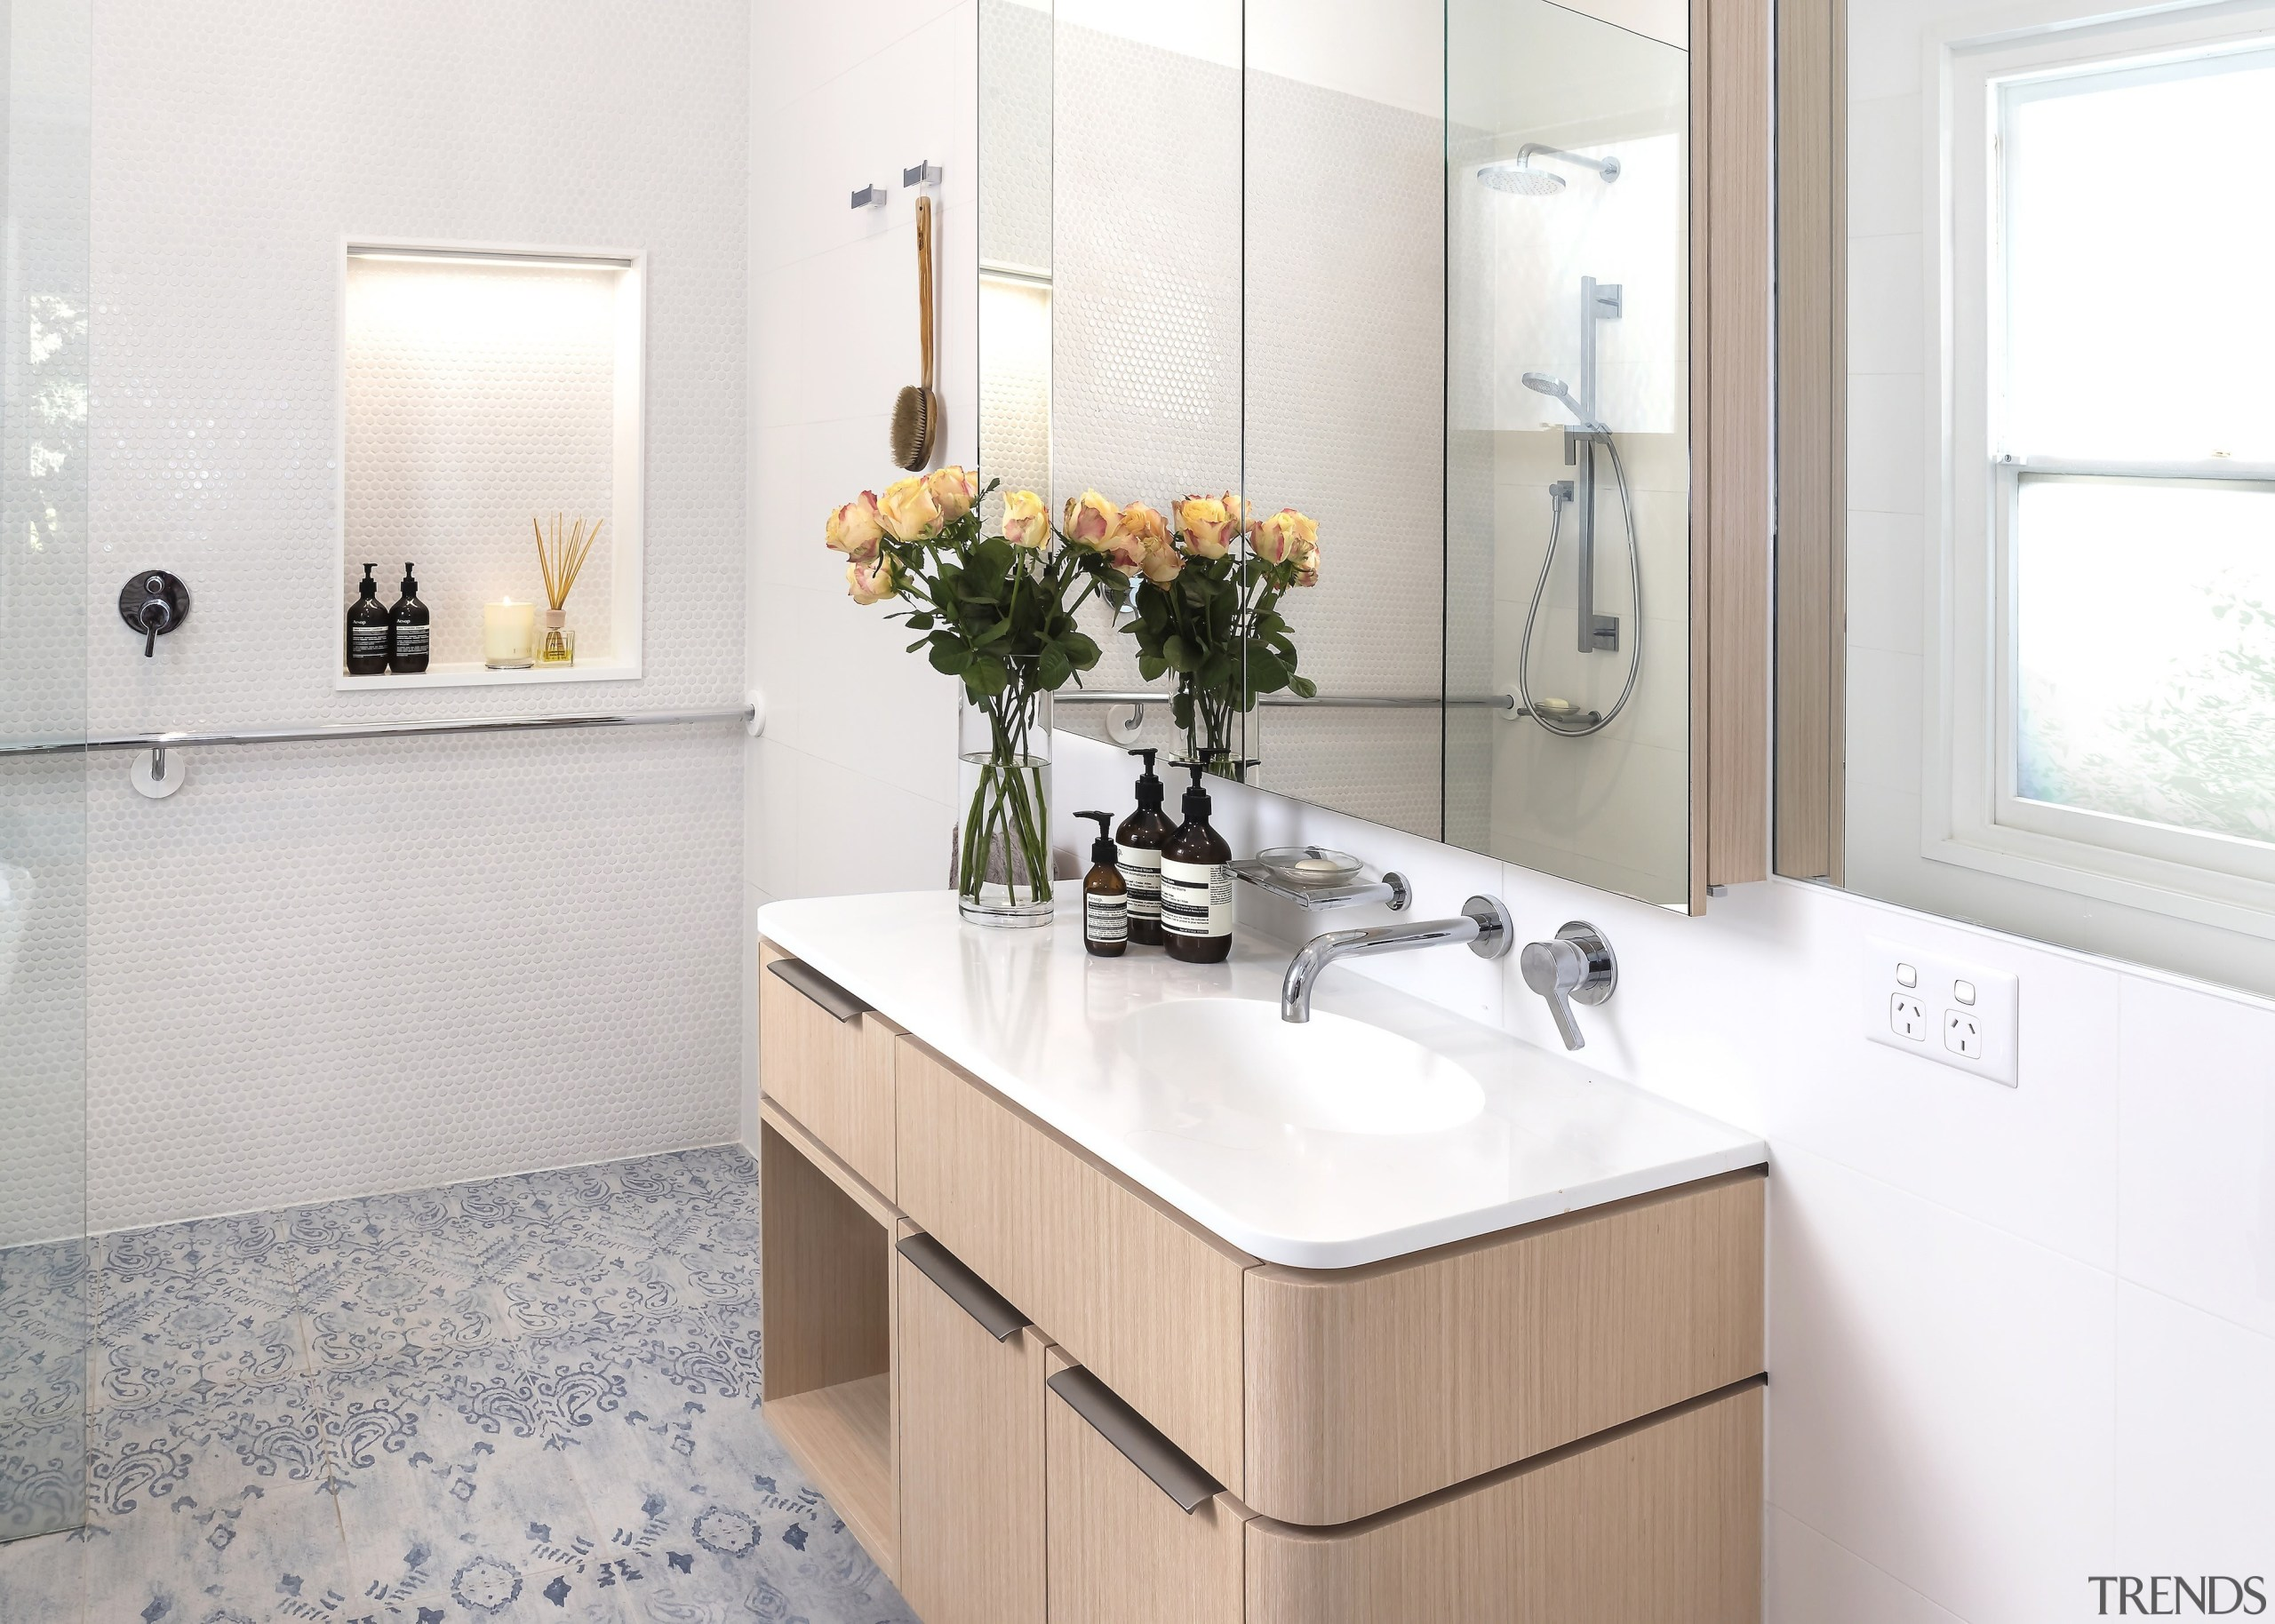 Highly Commended – Mcmahon And Nerlich Architects 2 bathroom, bathroom accessory, bathroom cabinet, bathroom sink, countertop, floor, home, interior design, plumbing fixture, room, sink, tap, white